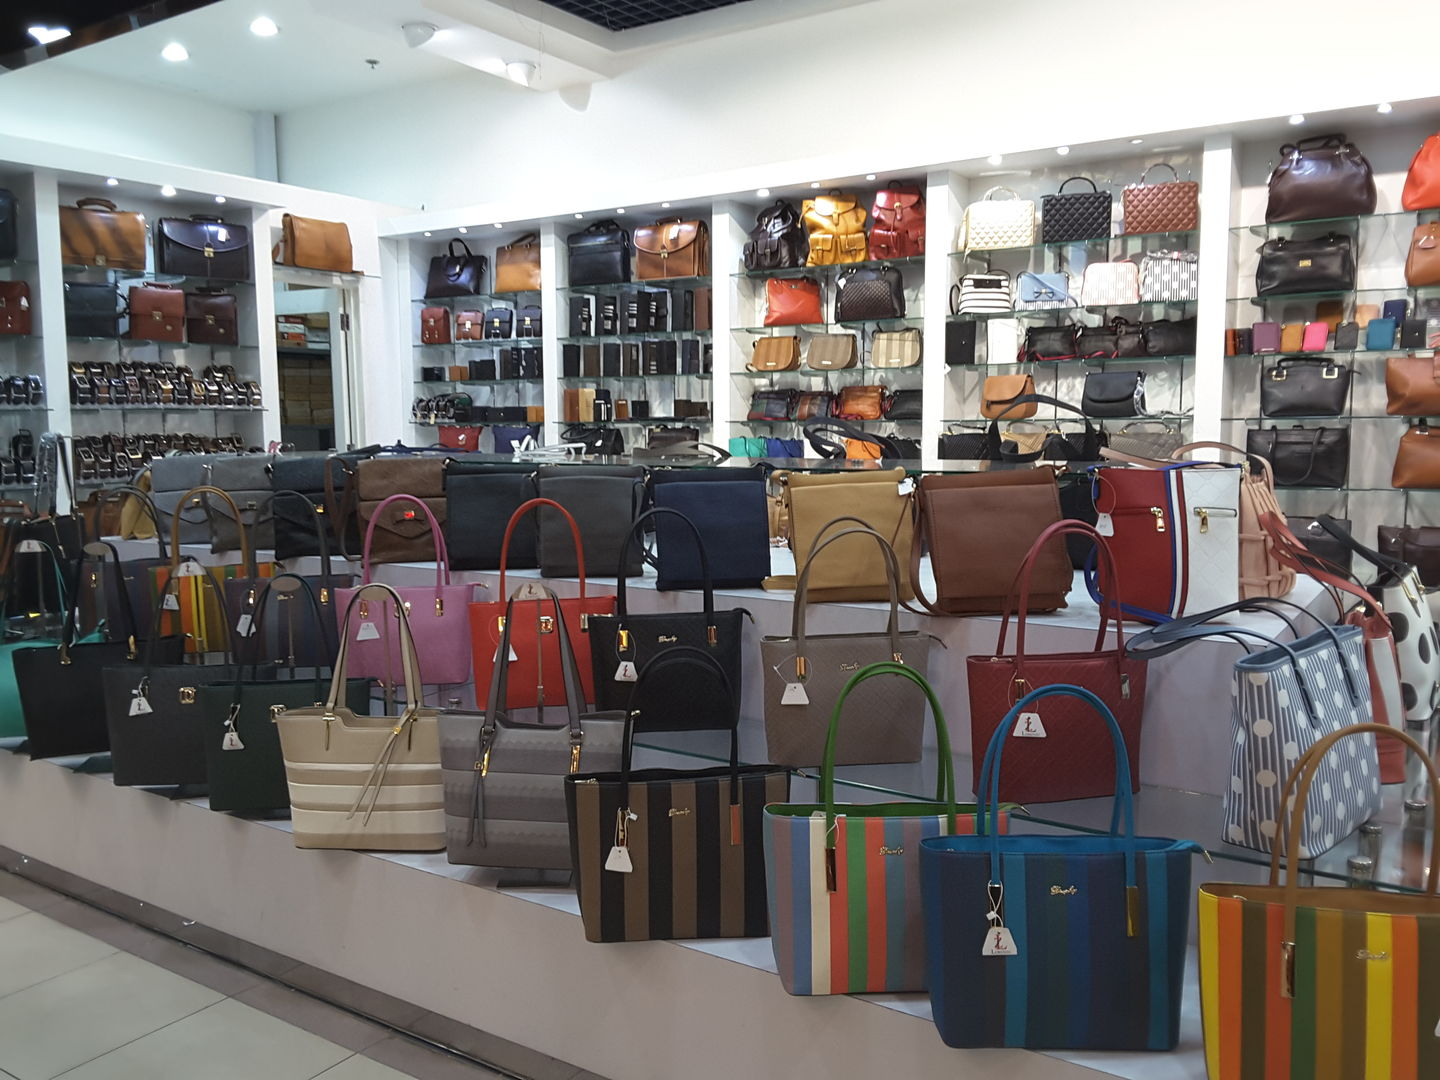 HiDubai-business-lorenzo-shopping-luggage-travel-accessories-oud-metha-dubai-2